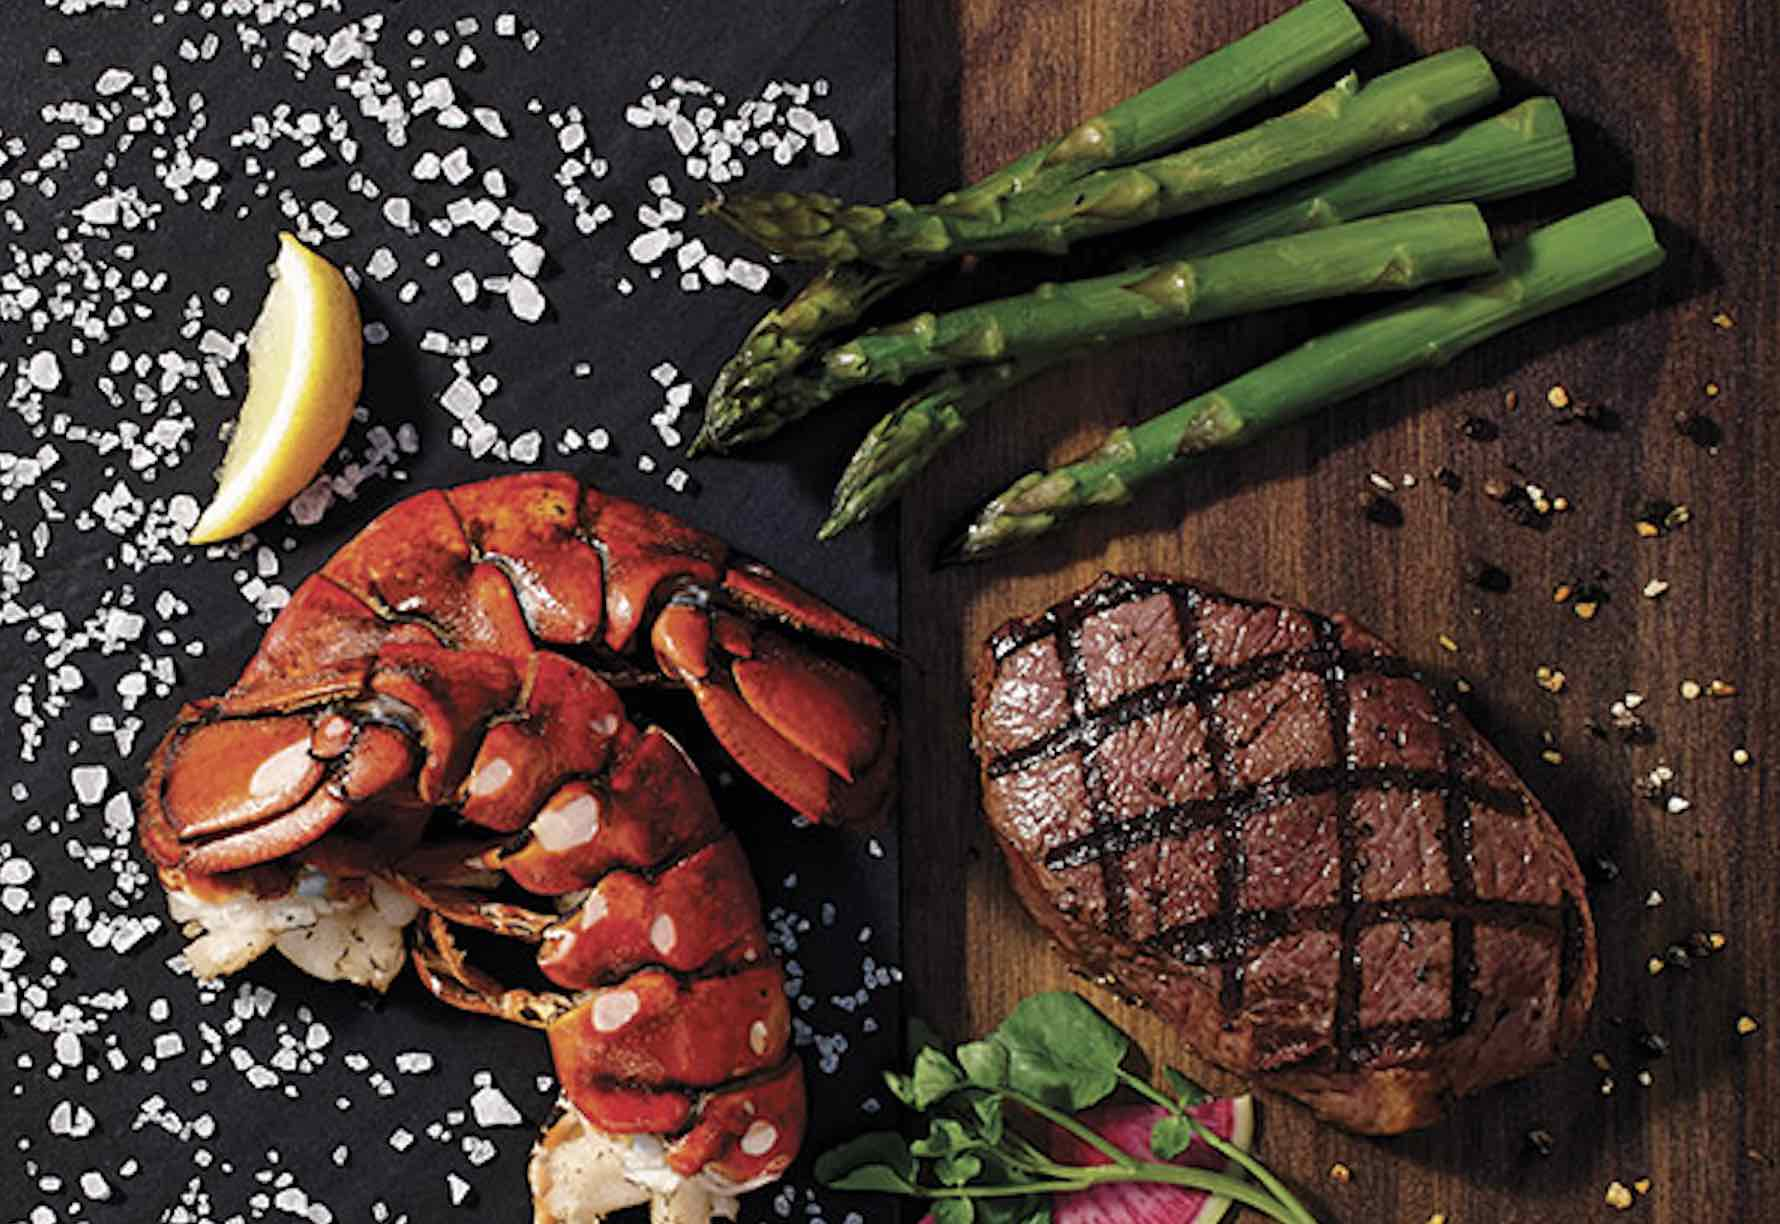 Baton Rouge Steakhouse and Bar seafood and steak on a cutting board